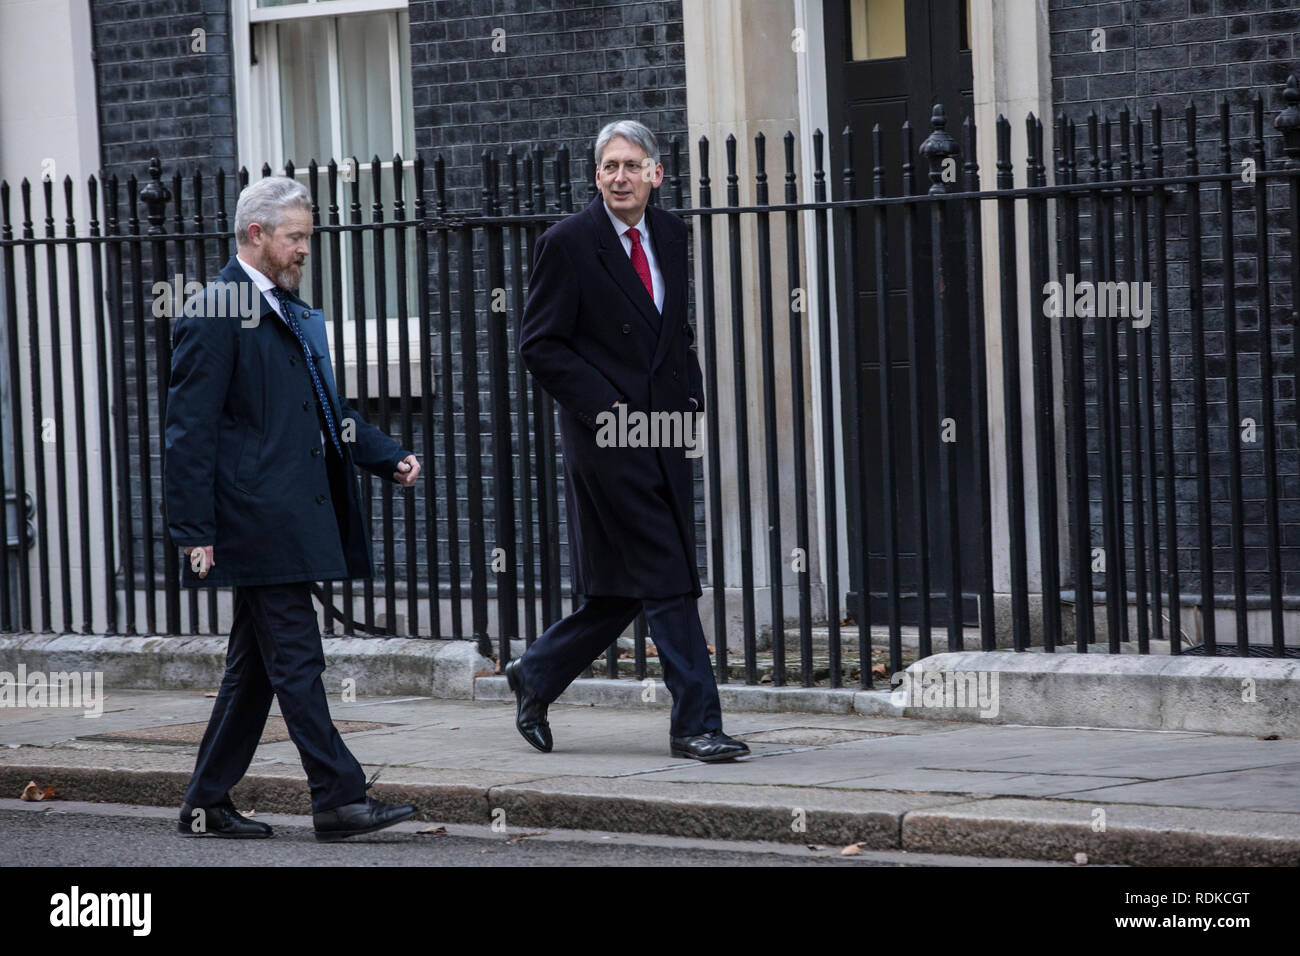 Philip Hammond, outside No.10 Downing Street during the Brexit turmoil within the Conservative Government during the negotiations, London, England, UK - Stock Image